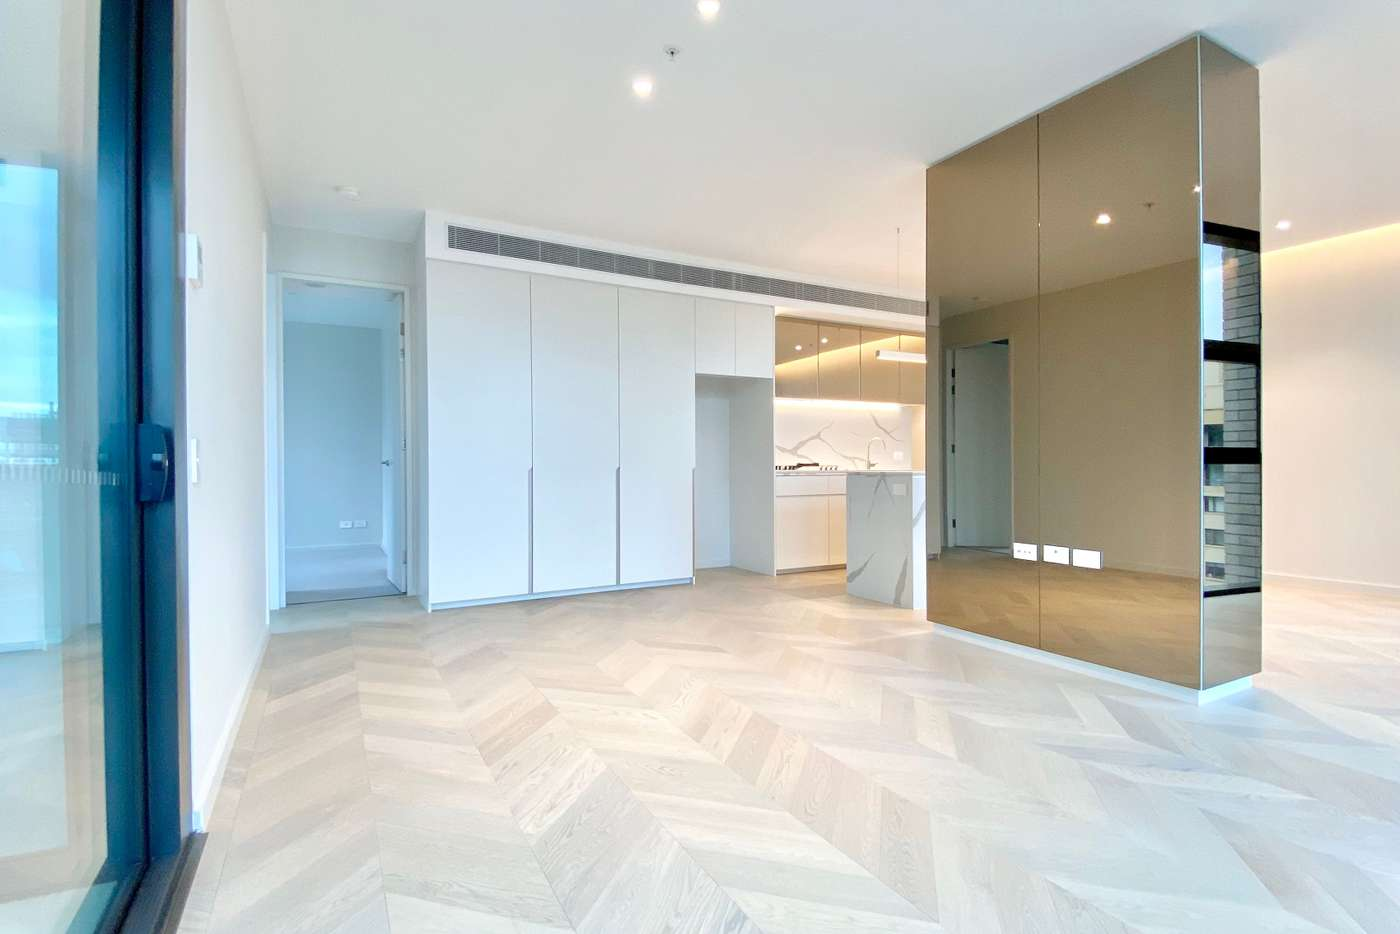 Main view of Homely apartment listing, 2506/60 Bathurst Street, Sydney NSW 2000